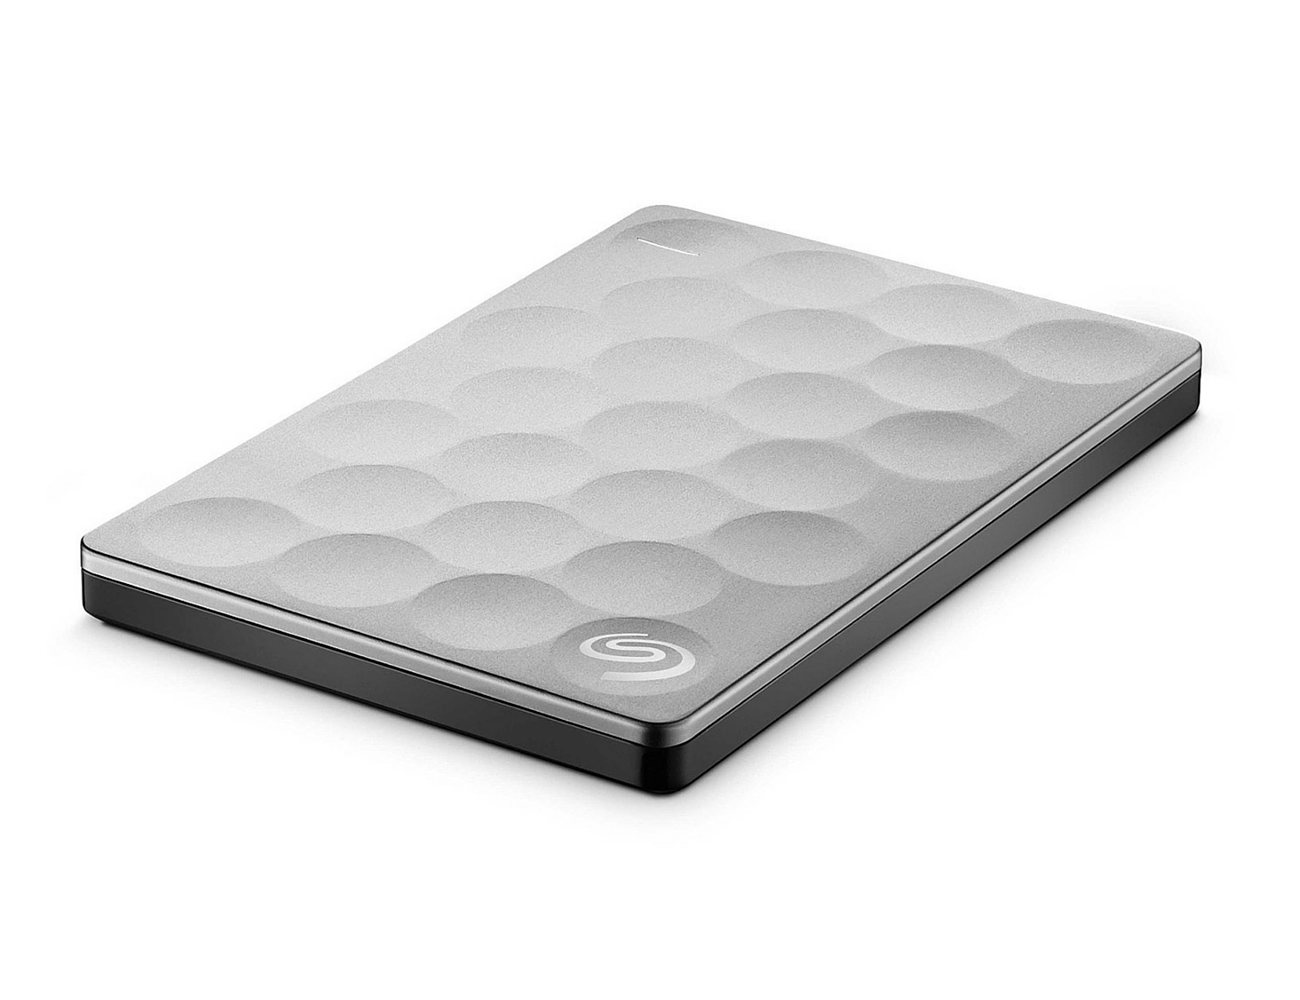 seagate-backup-plus-ultra-slim-portable-hard-drive-03